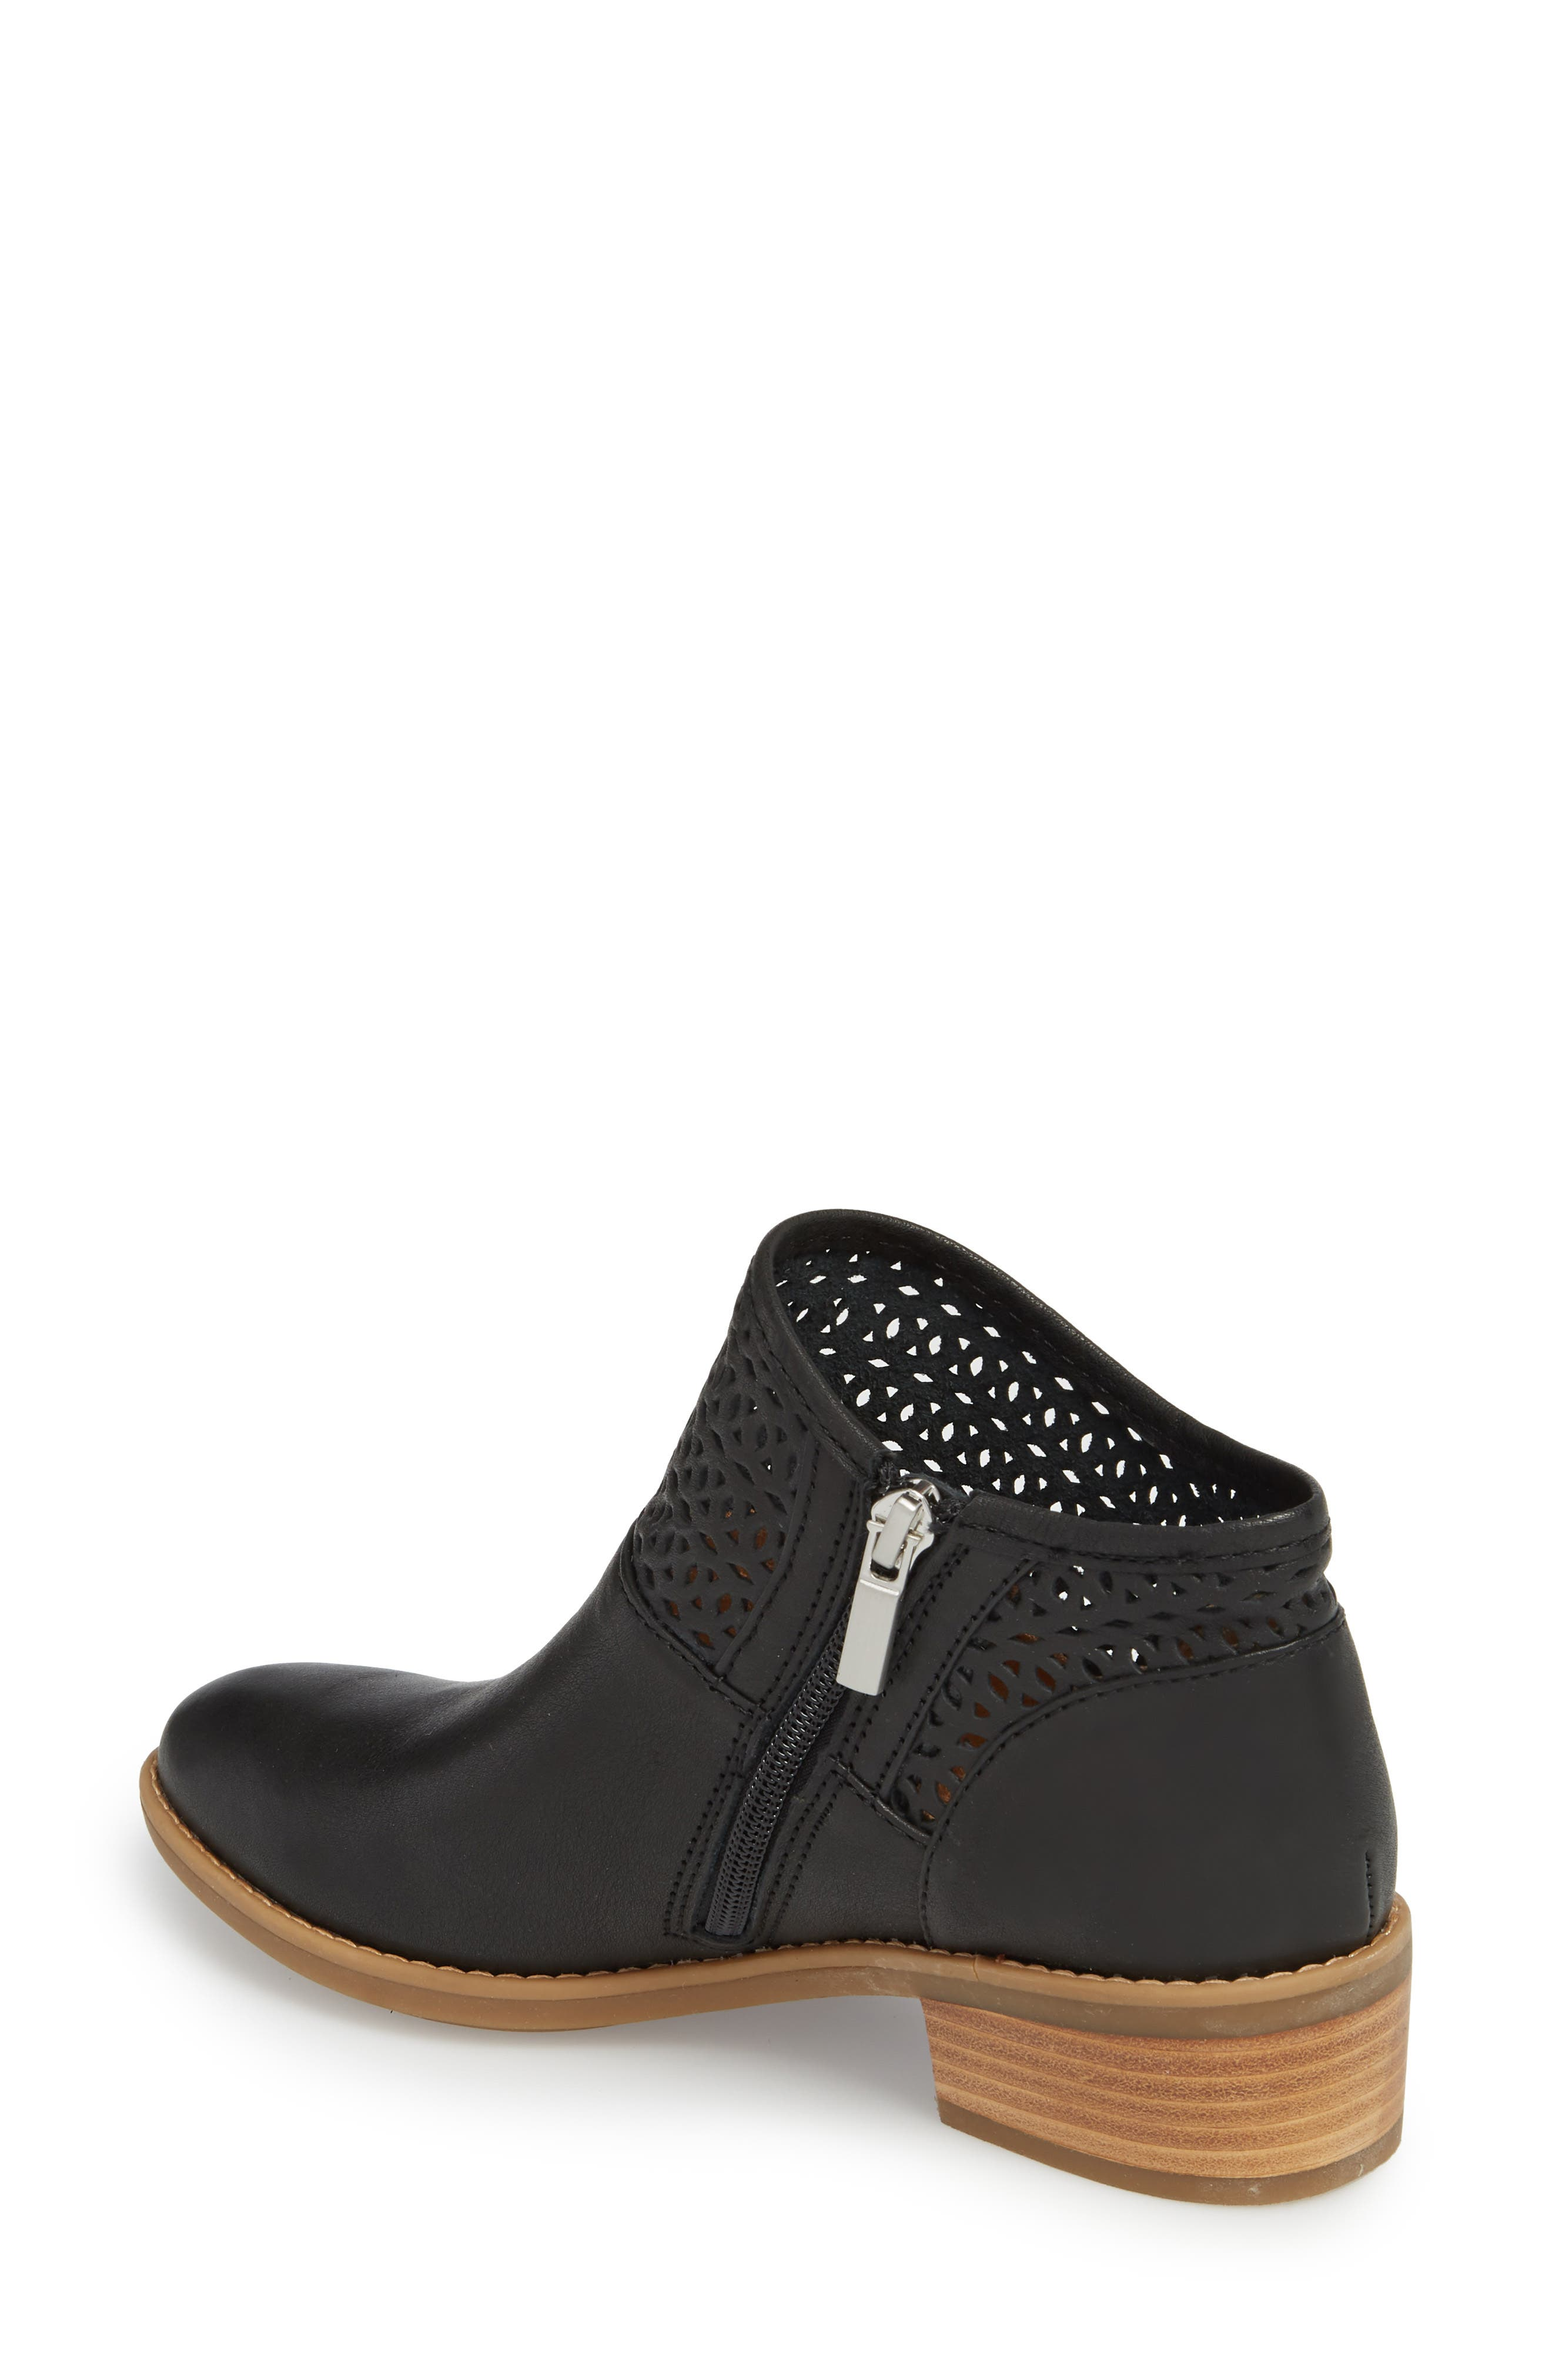 Caileen Bootie,                             Alternate thumbnail 2, color,                             BLACK